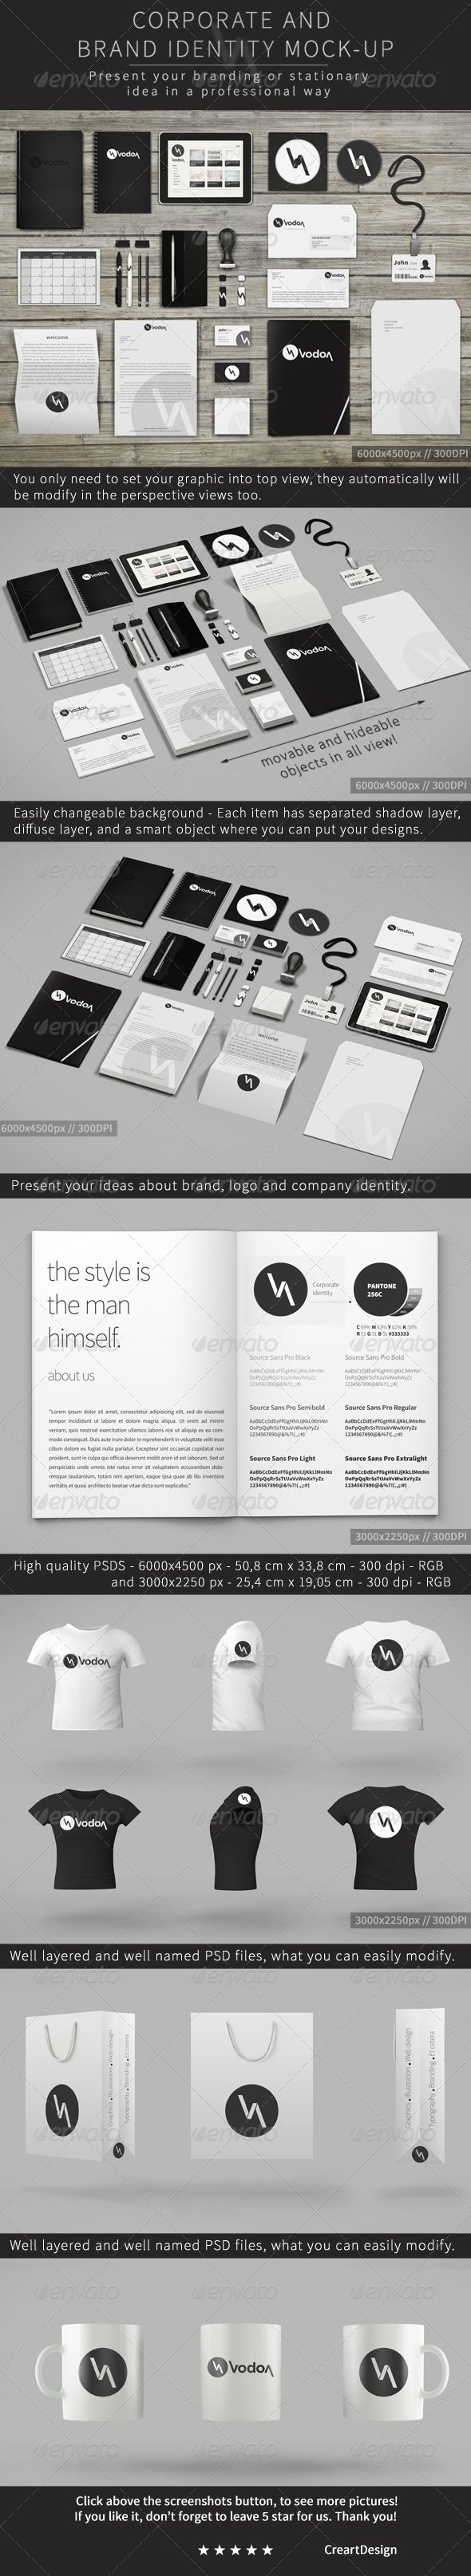 Corporate and Brand Identity Mock-Up Template